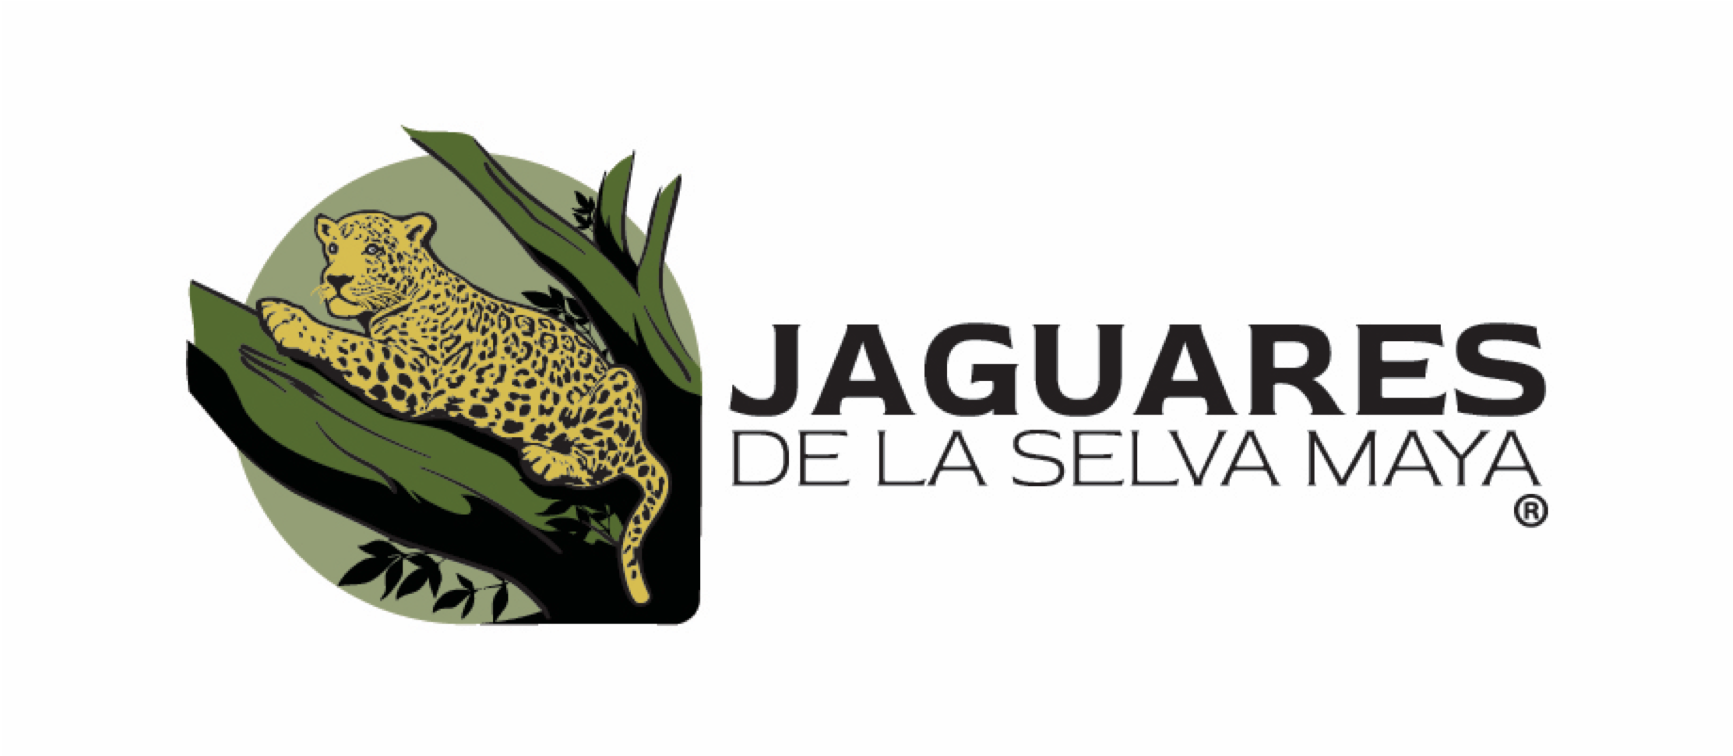 Pacman is one of many jaguars studied as part of a research project in la Selva Maya of Mexico.